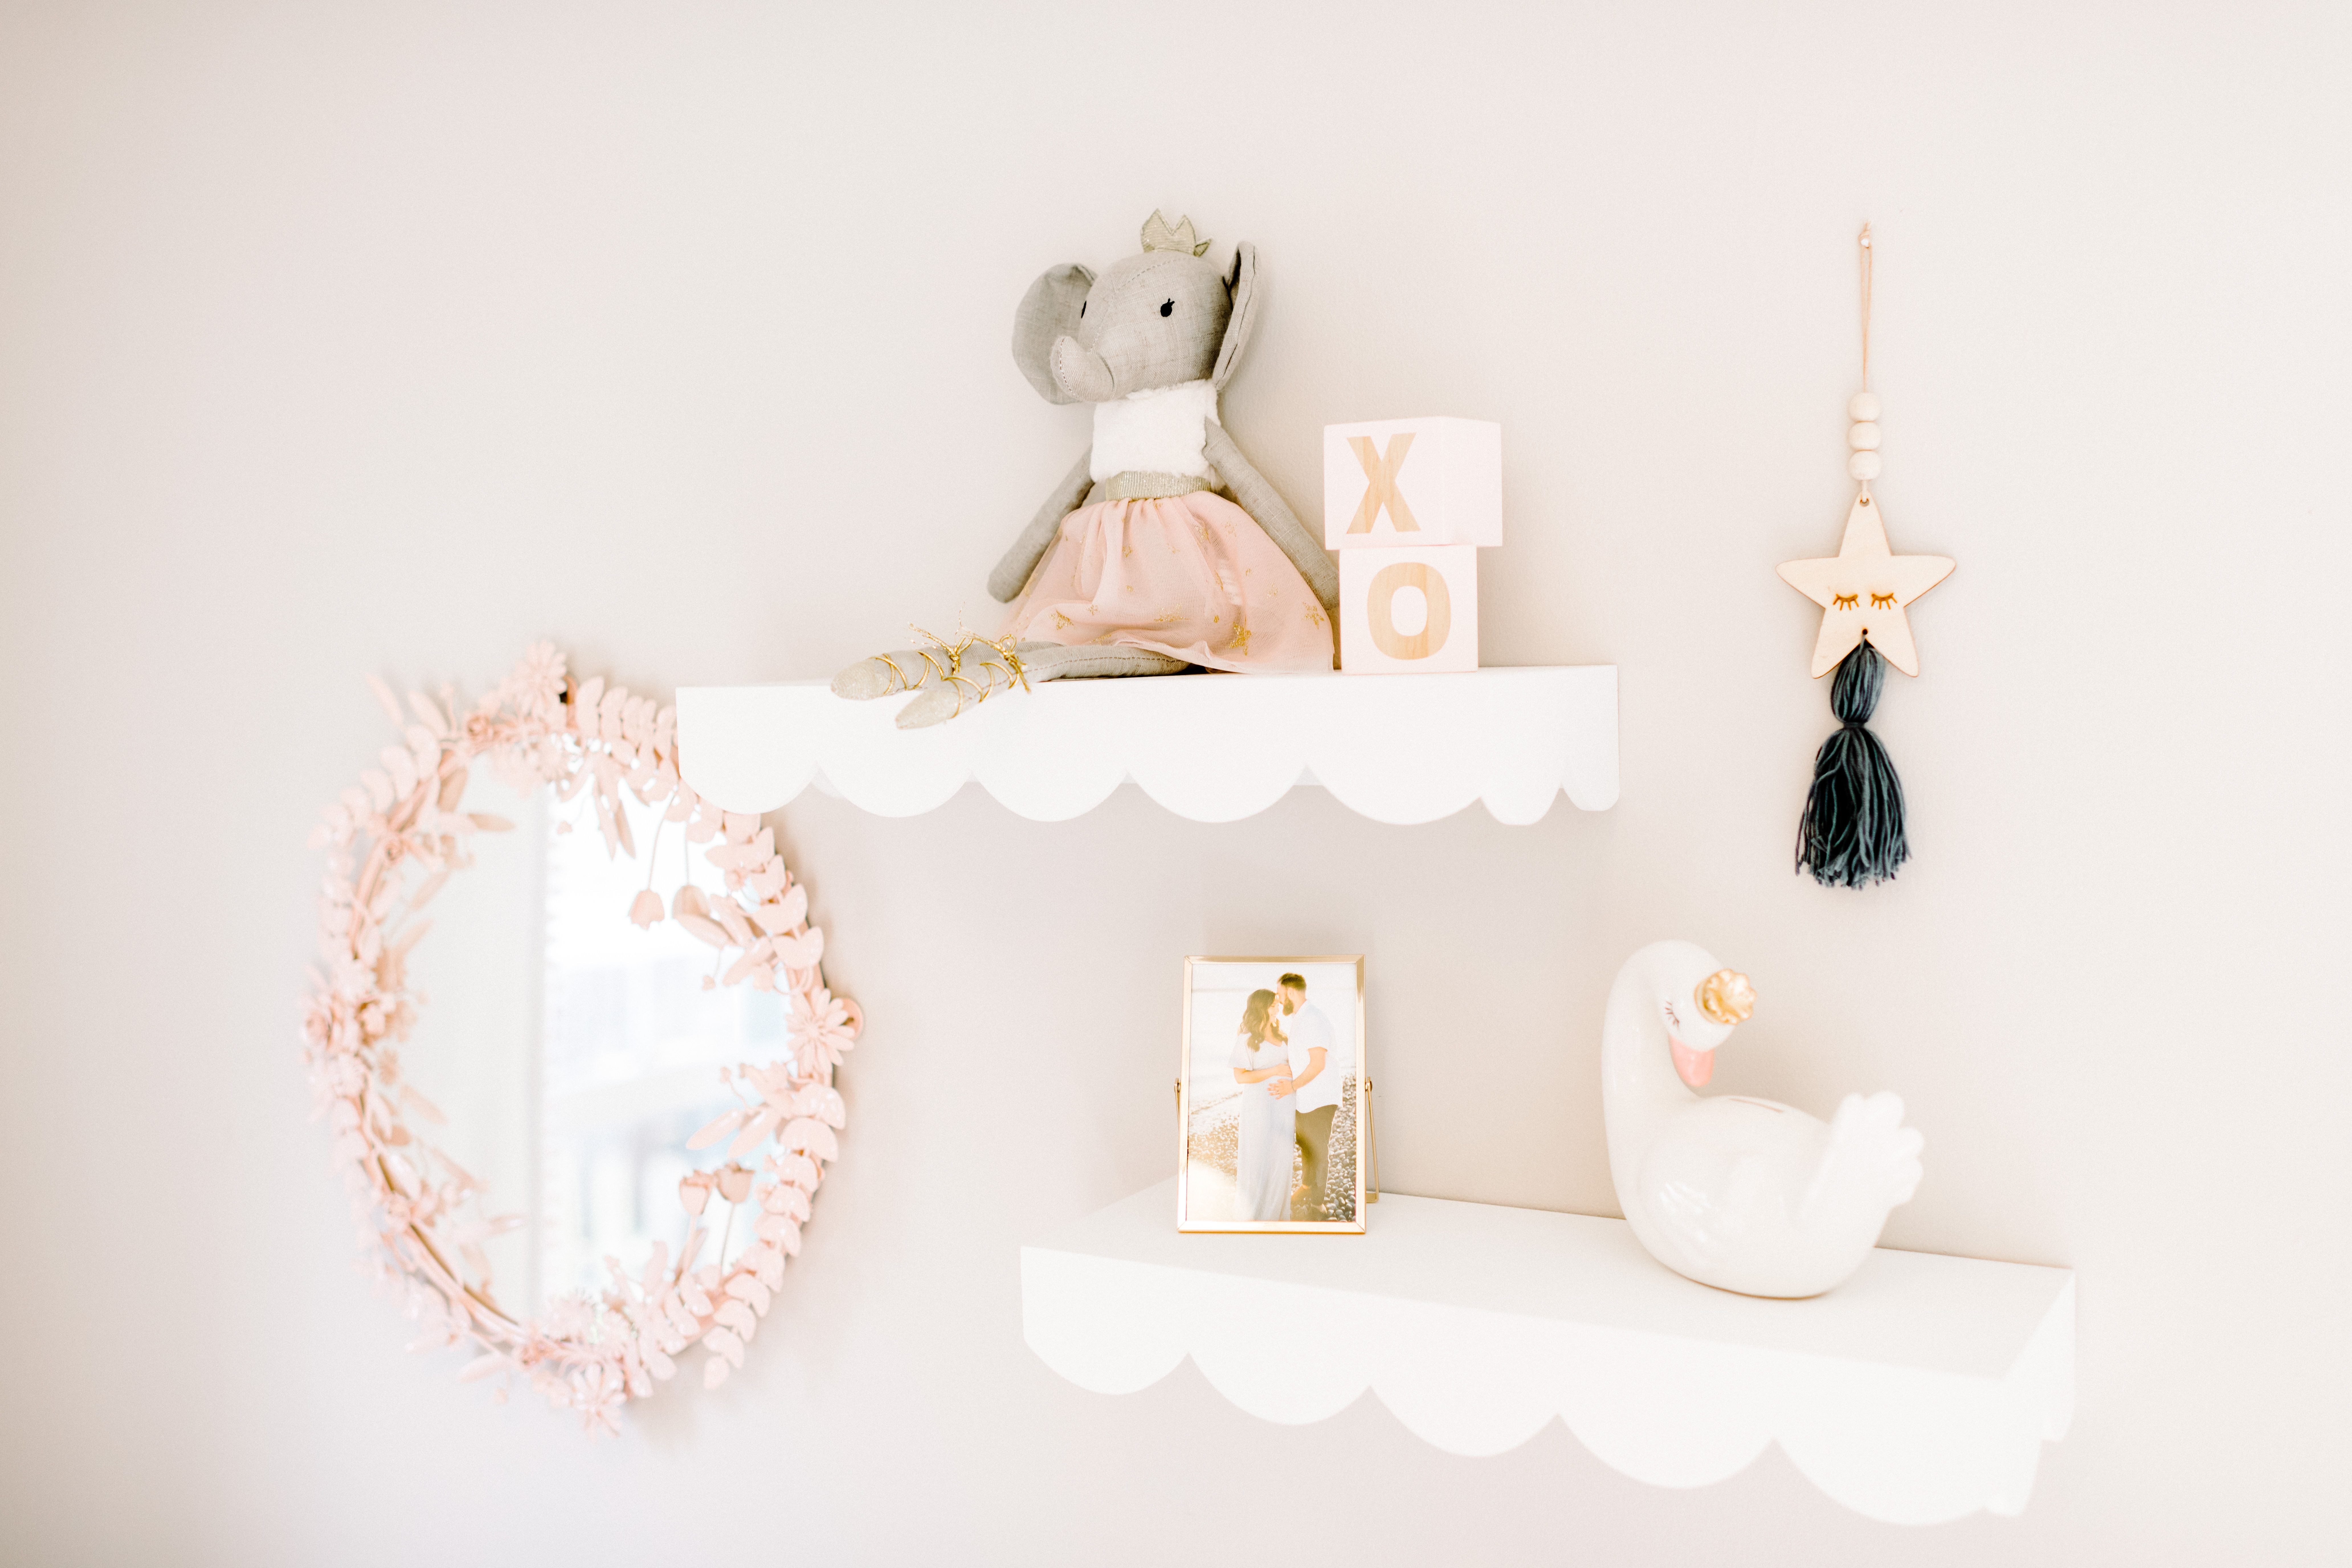 Whimsical Floral Nursery Project Nursery In 2020 Nursery Shelf Decor Nursery Wall Decor Girl Nursery Shelves